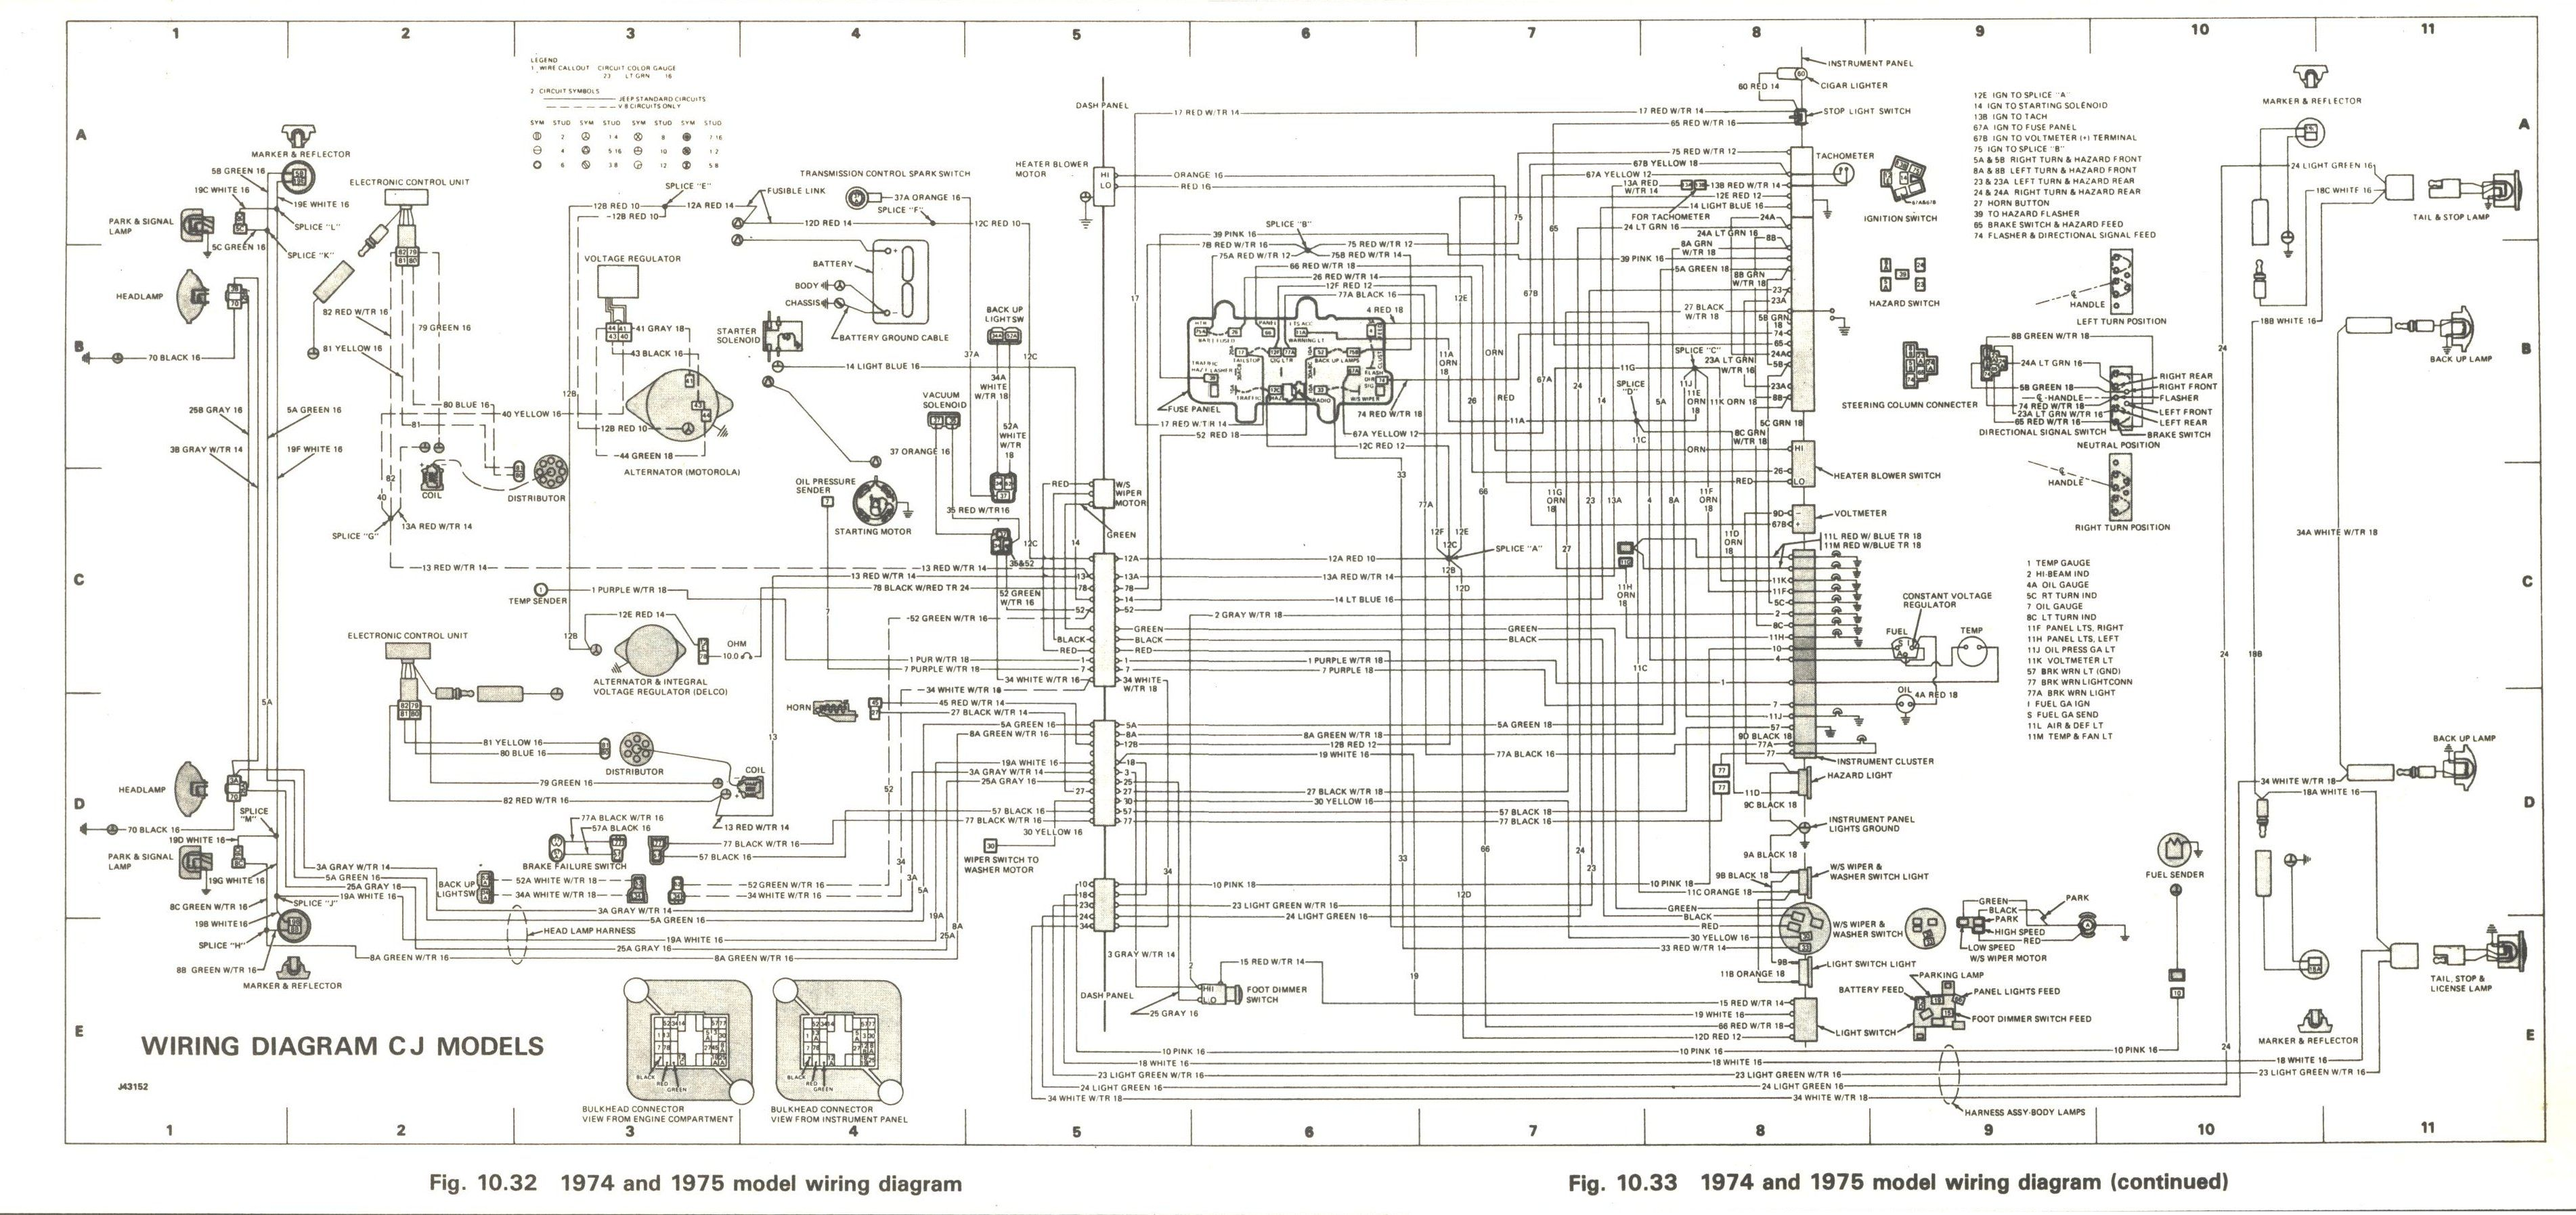 Cj5 Wiring Diagram Furthermore Jeep Cj7 Tachometer Wiring Diagram Along With Jeep Cj5